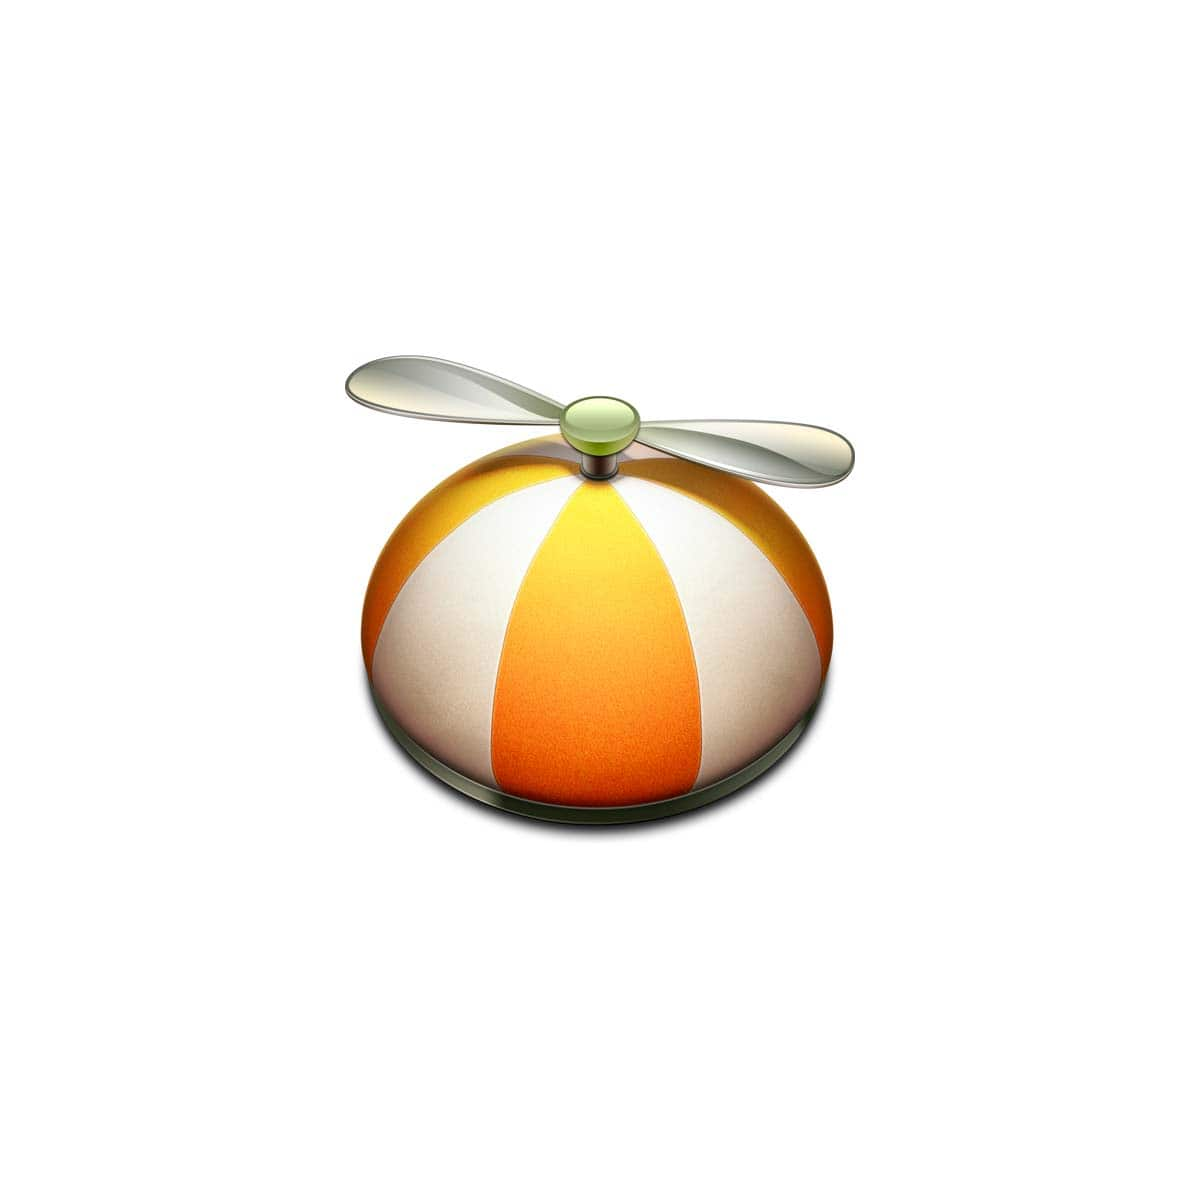 Little Snitch for OSX 50% off = $17.48